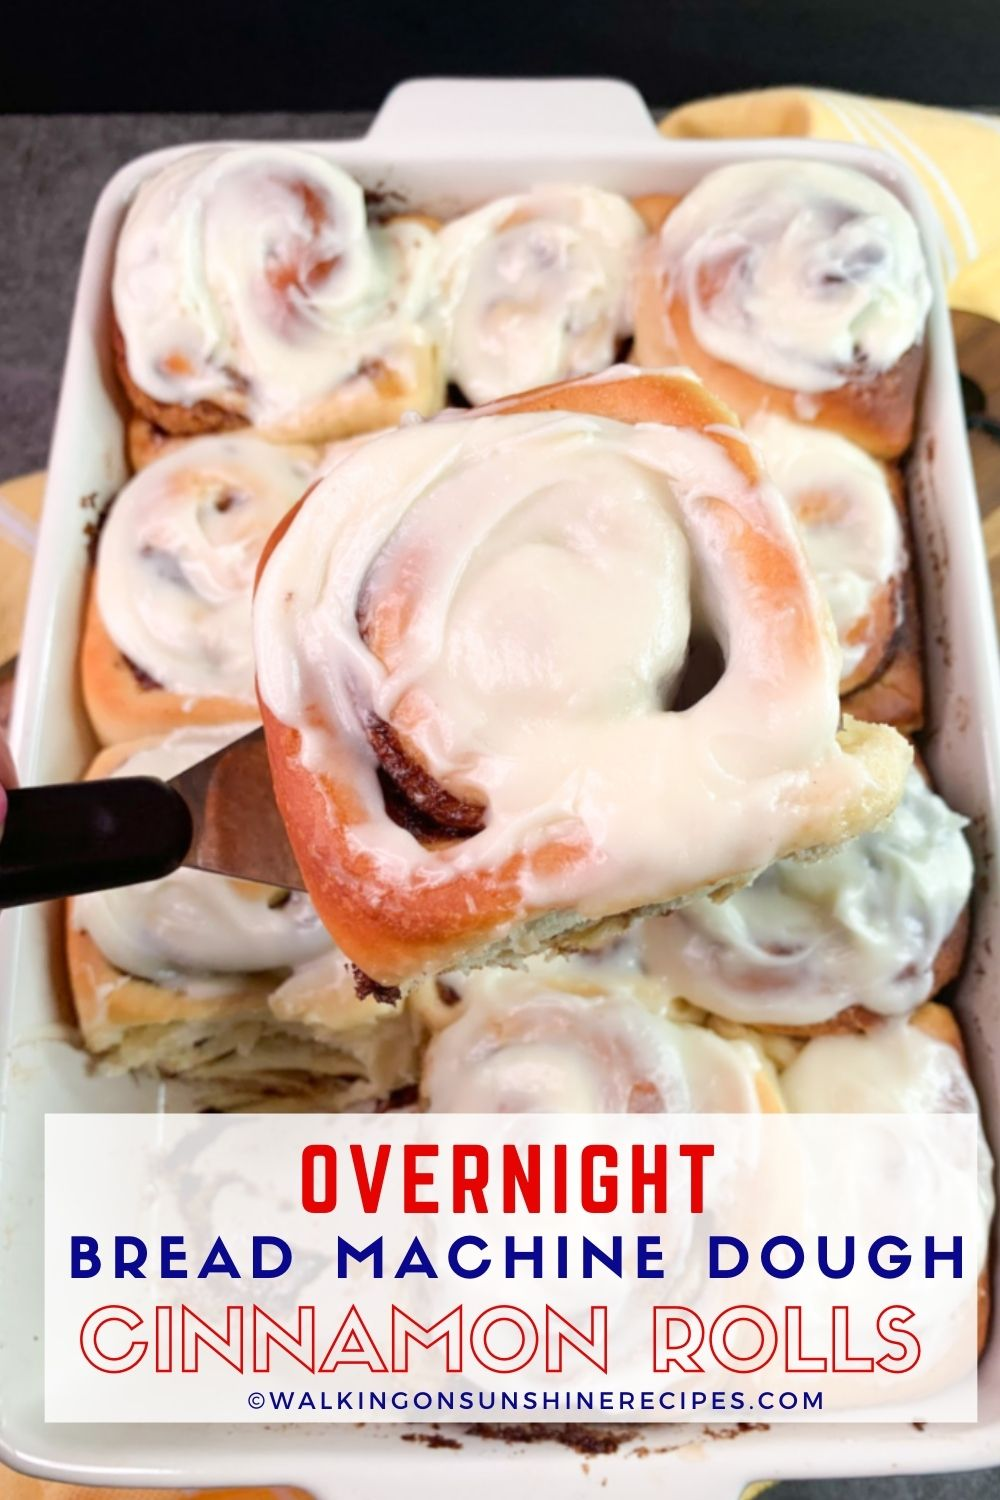 Cinnamon roll dough made in a bread machine with cream cheese frosting.